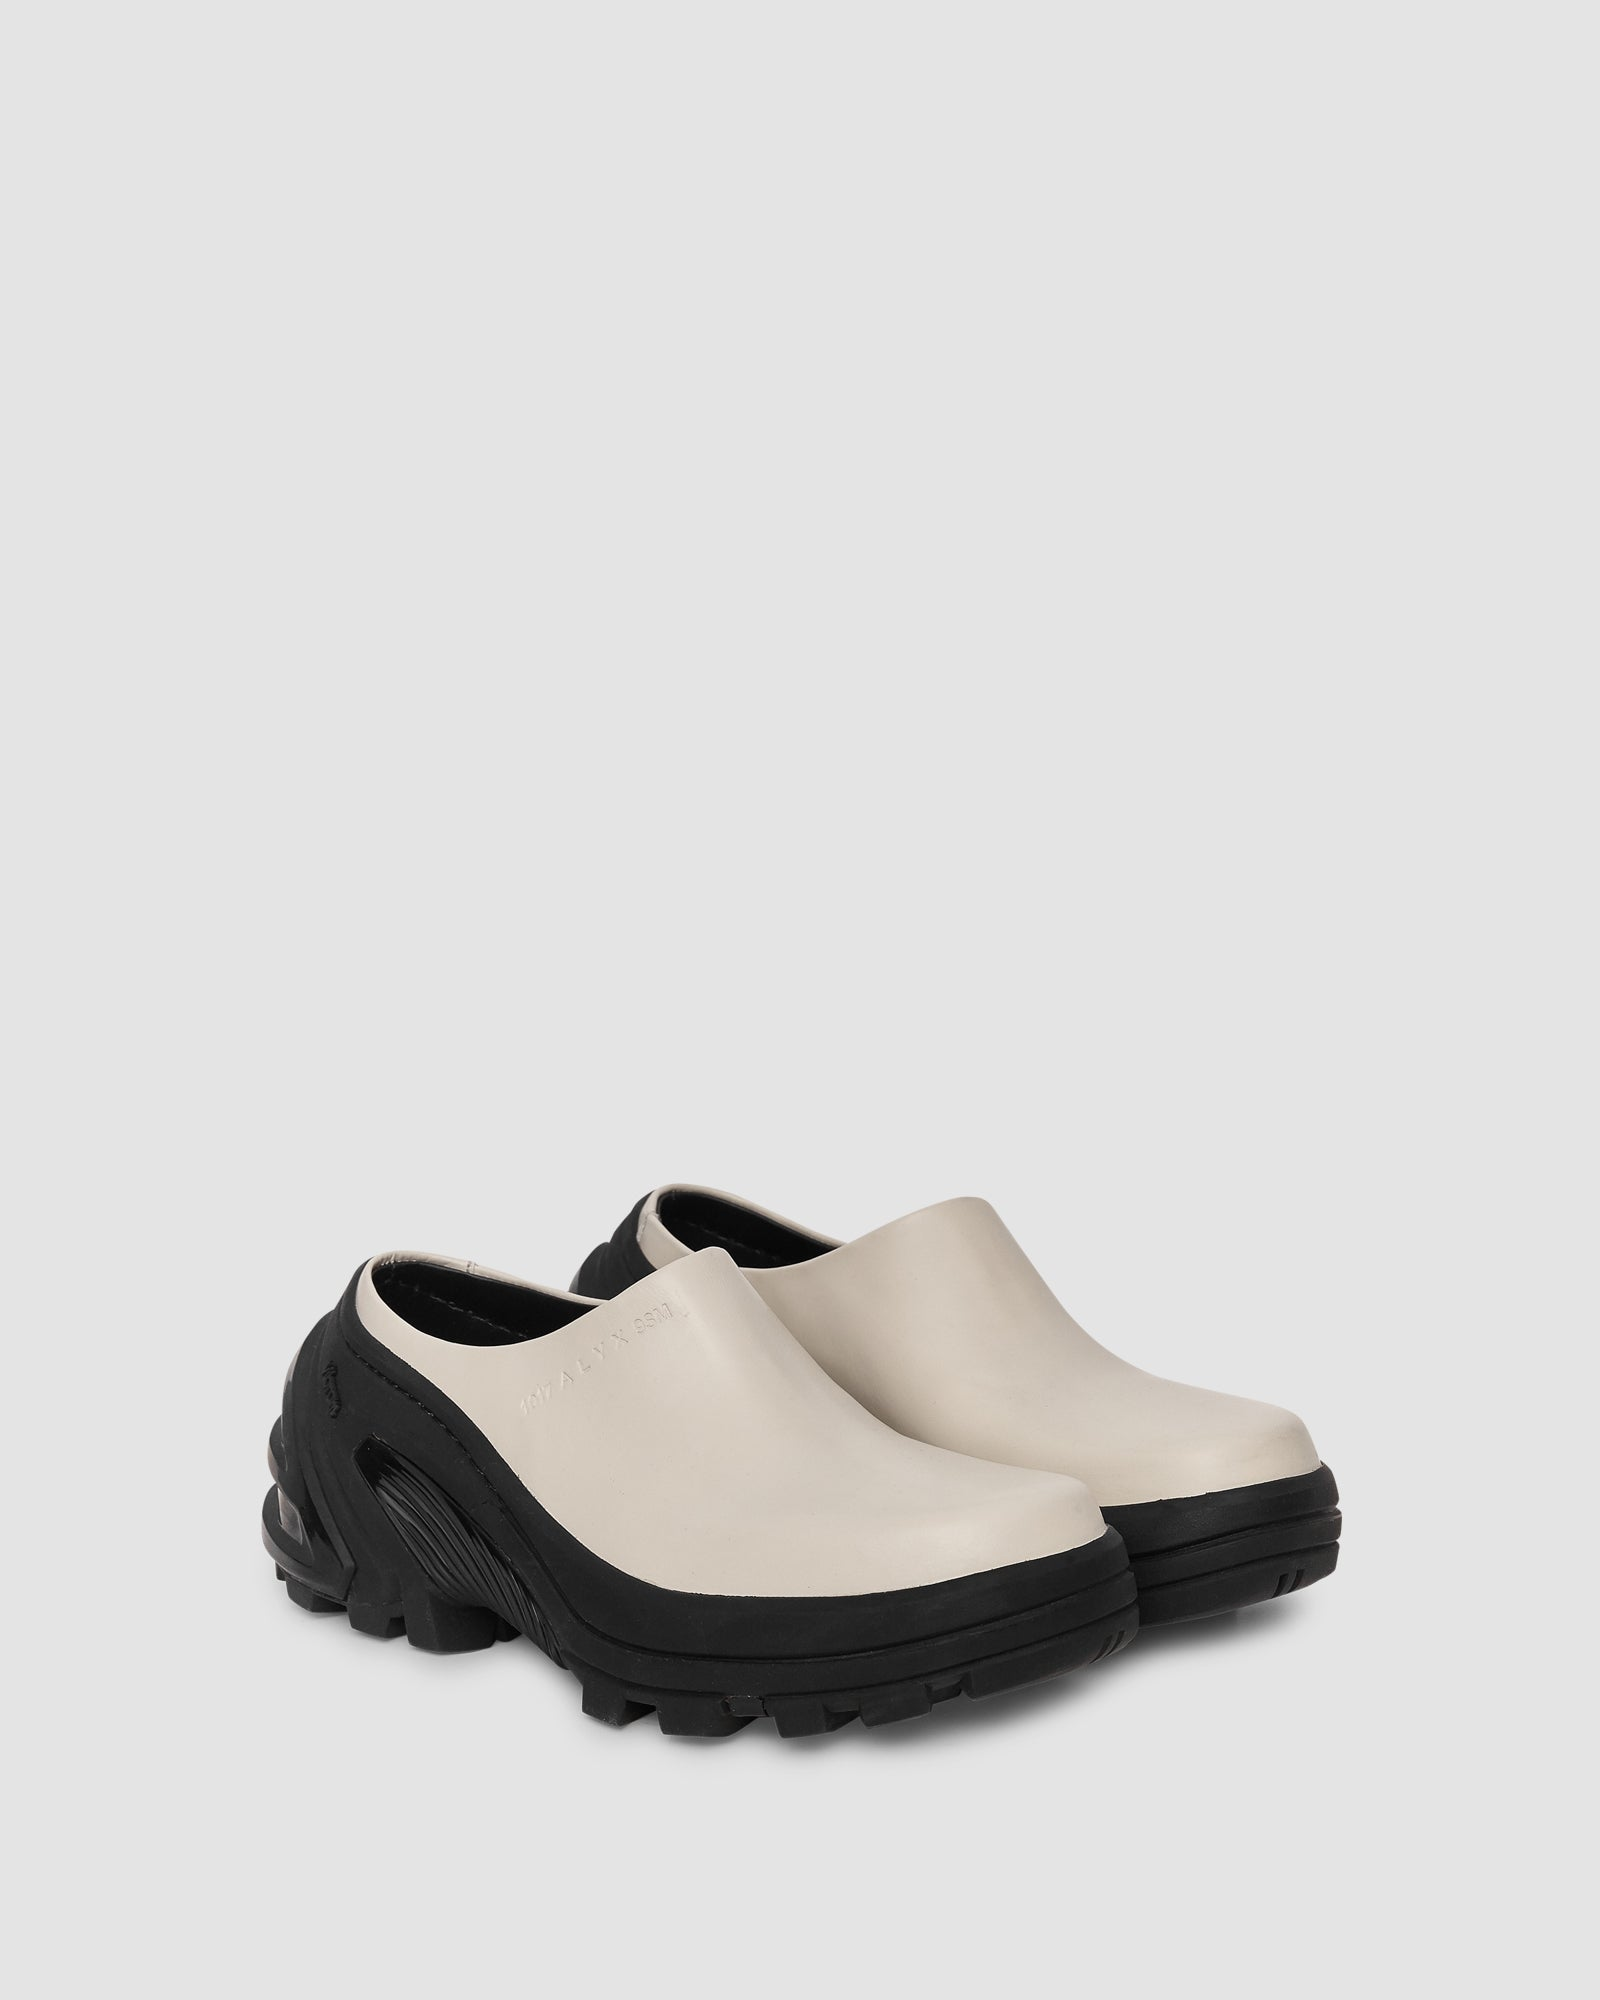 1017 ALYX 9SM | CLOG | Shoe | Google Shopping, Man, MULES, S20, S20EXSH, Shoes, TAN, UNISEX, Woman